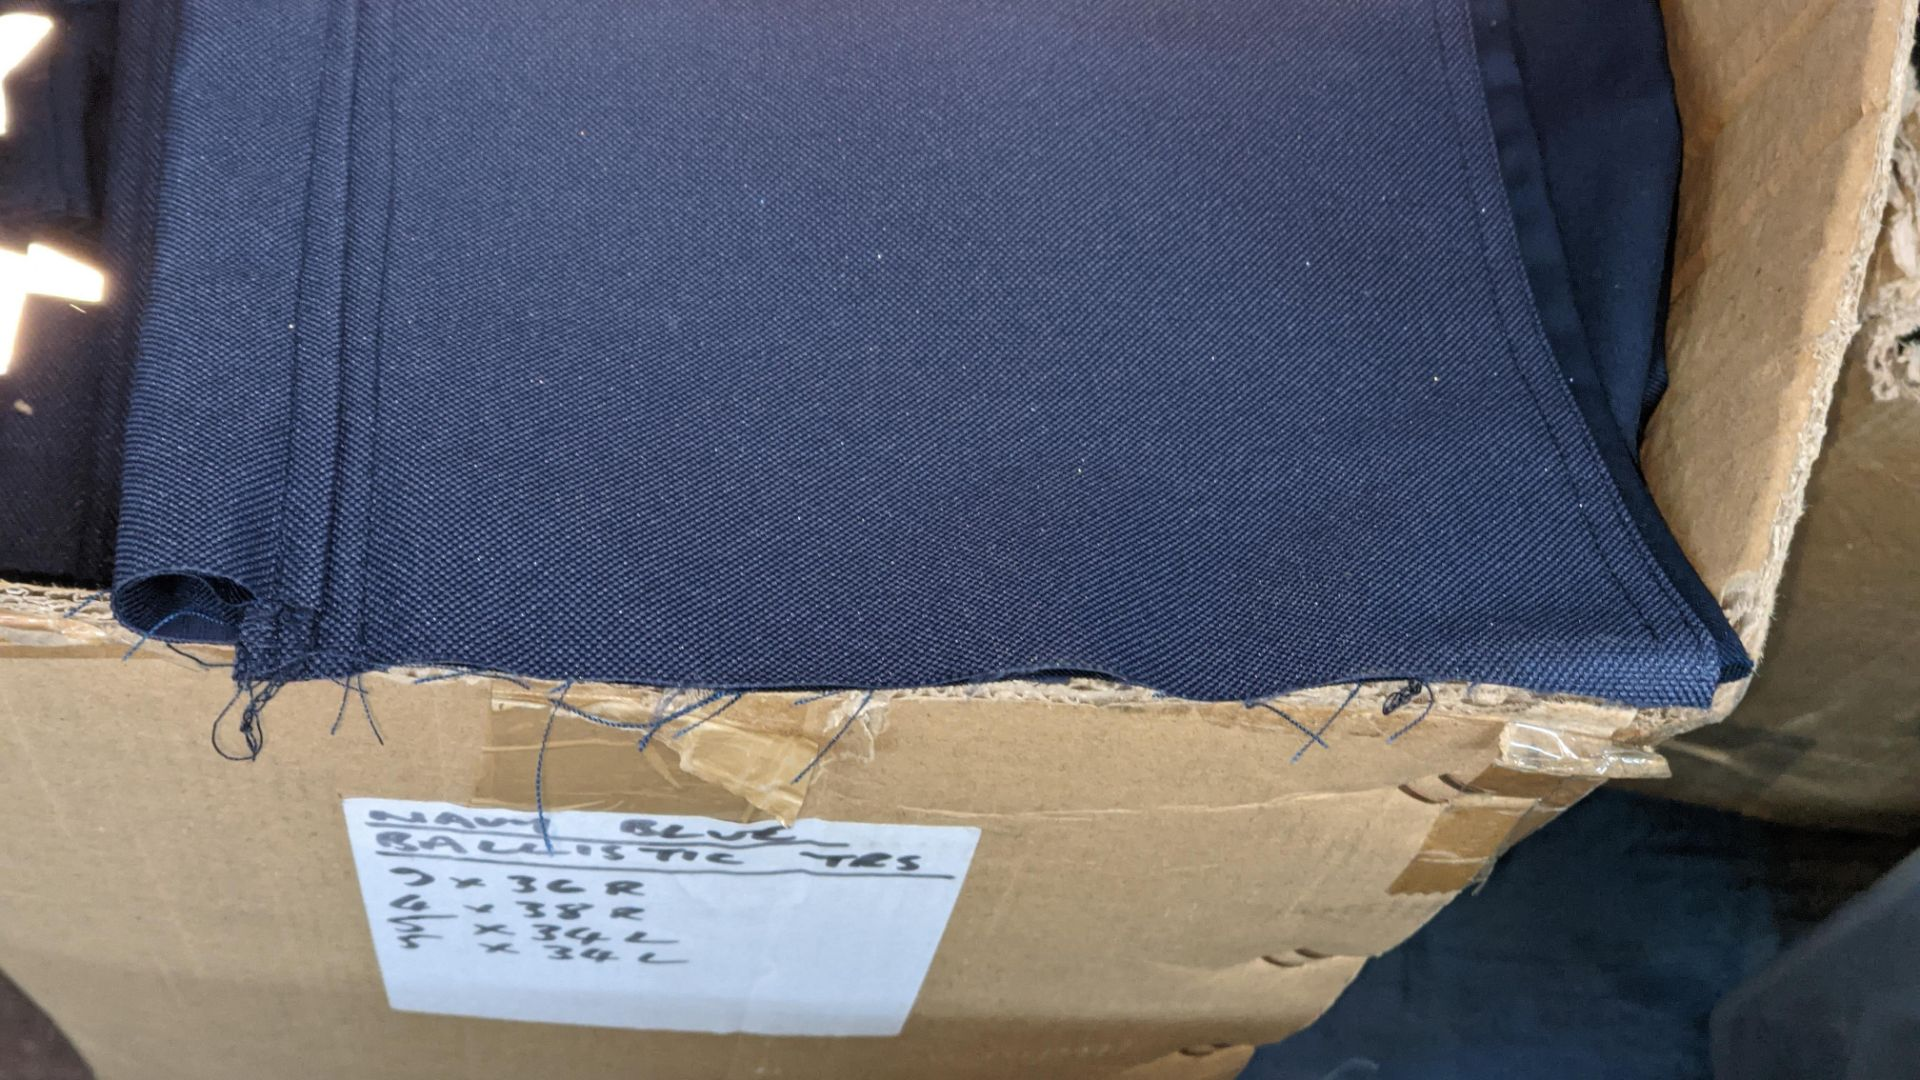 Box of blue work trousers with silver stripes - Image 5 of 5